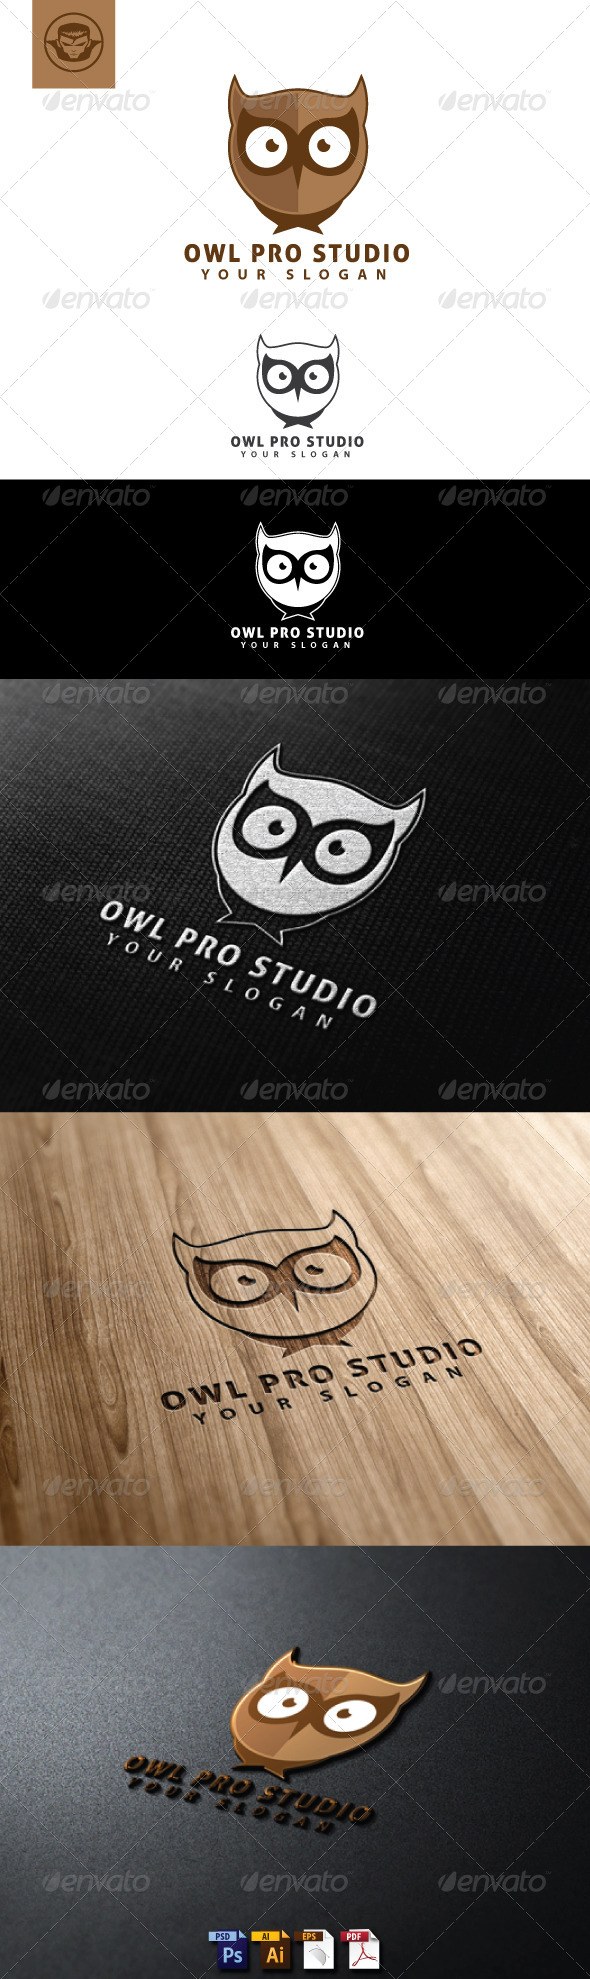 GraphicRiver Owl Pro Studio Logo Template 4818439